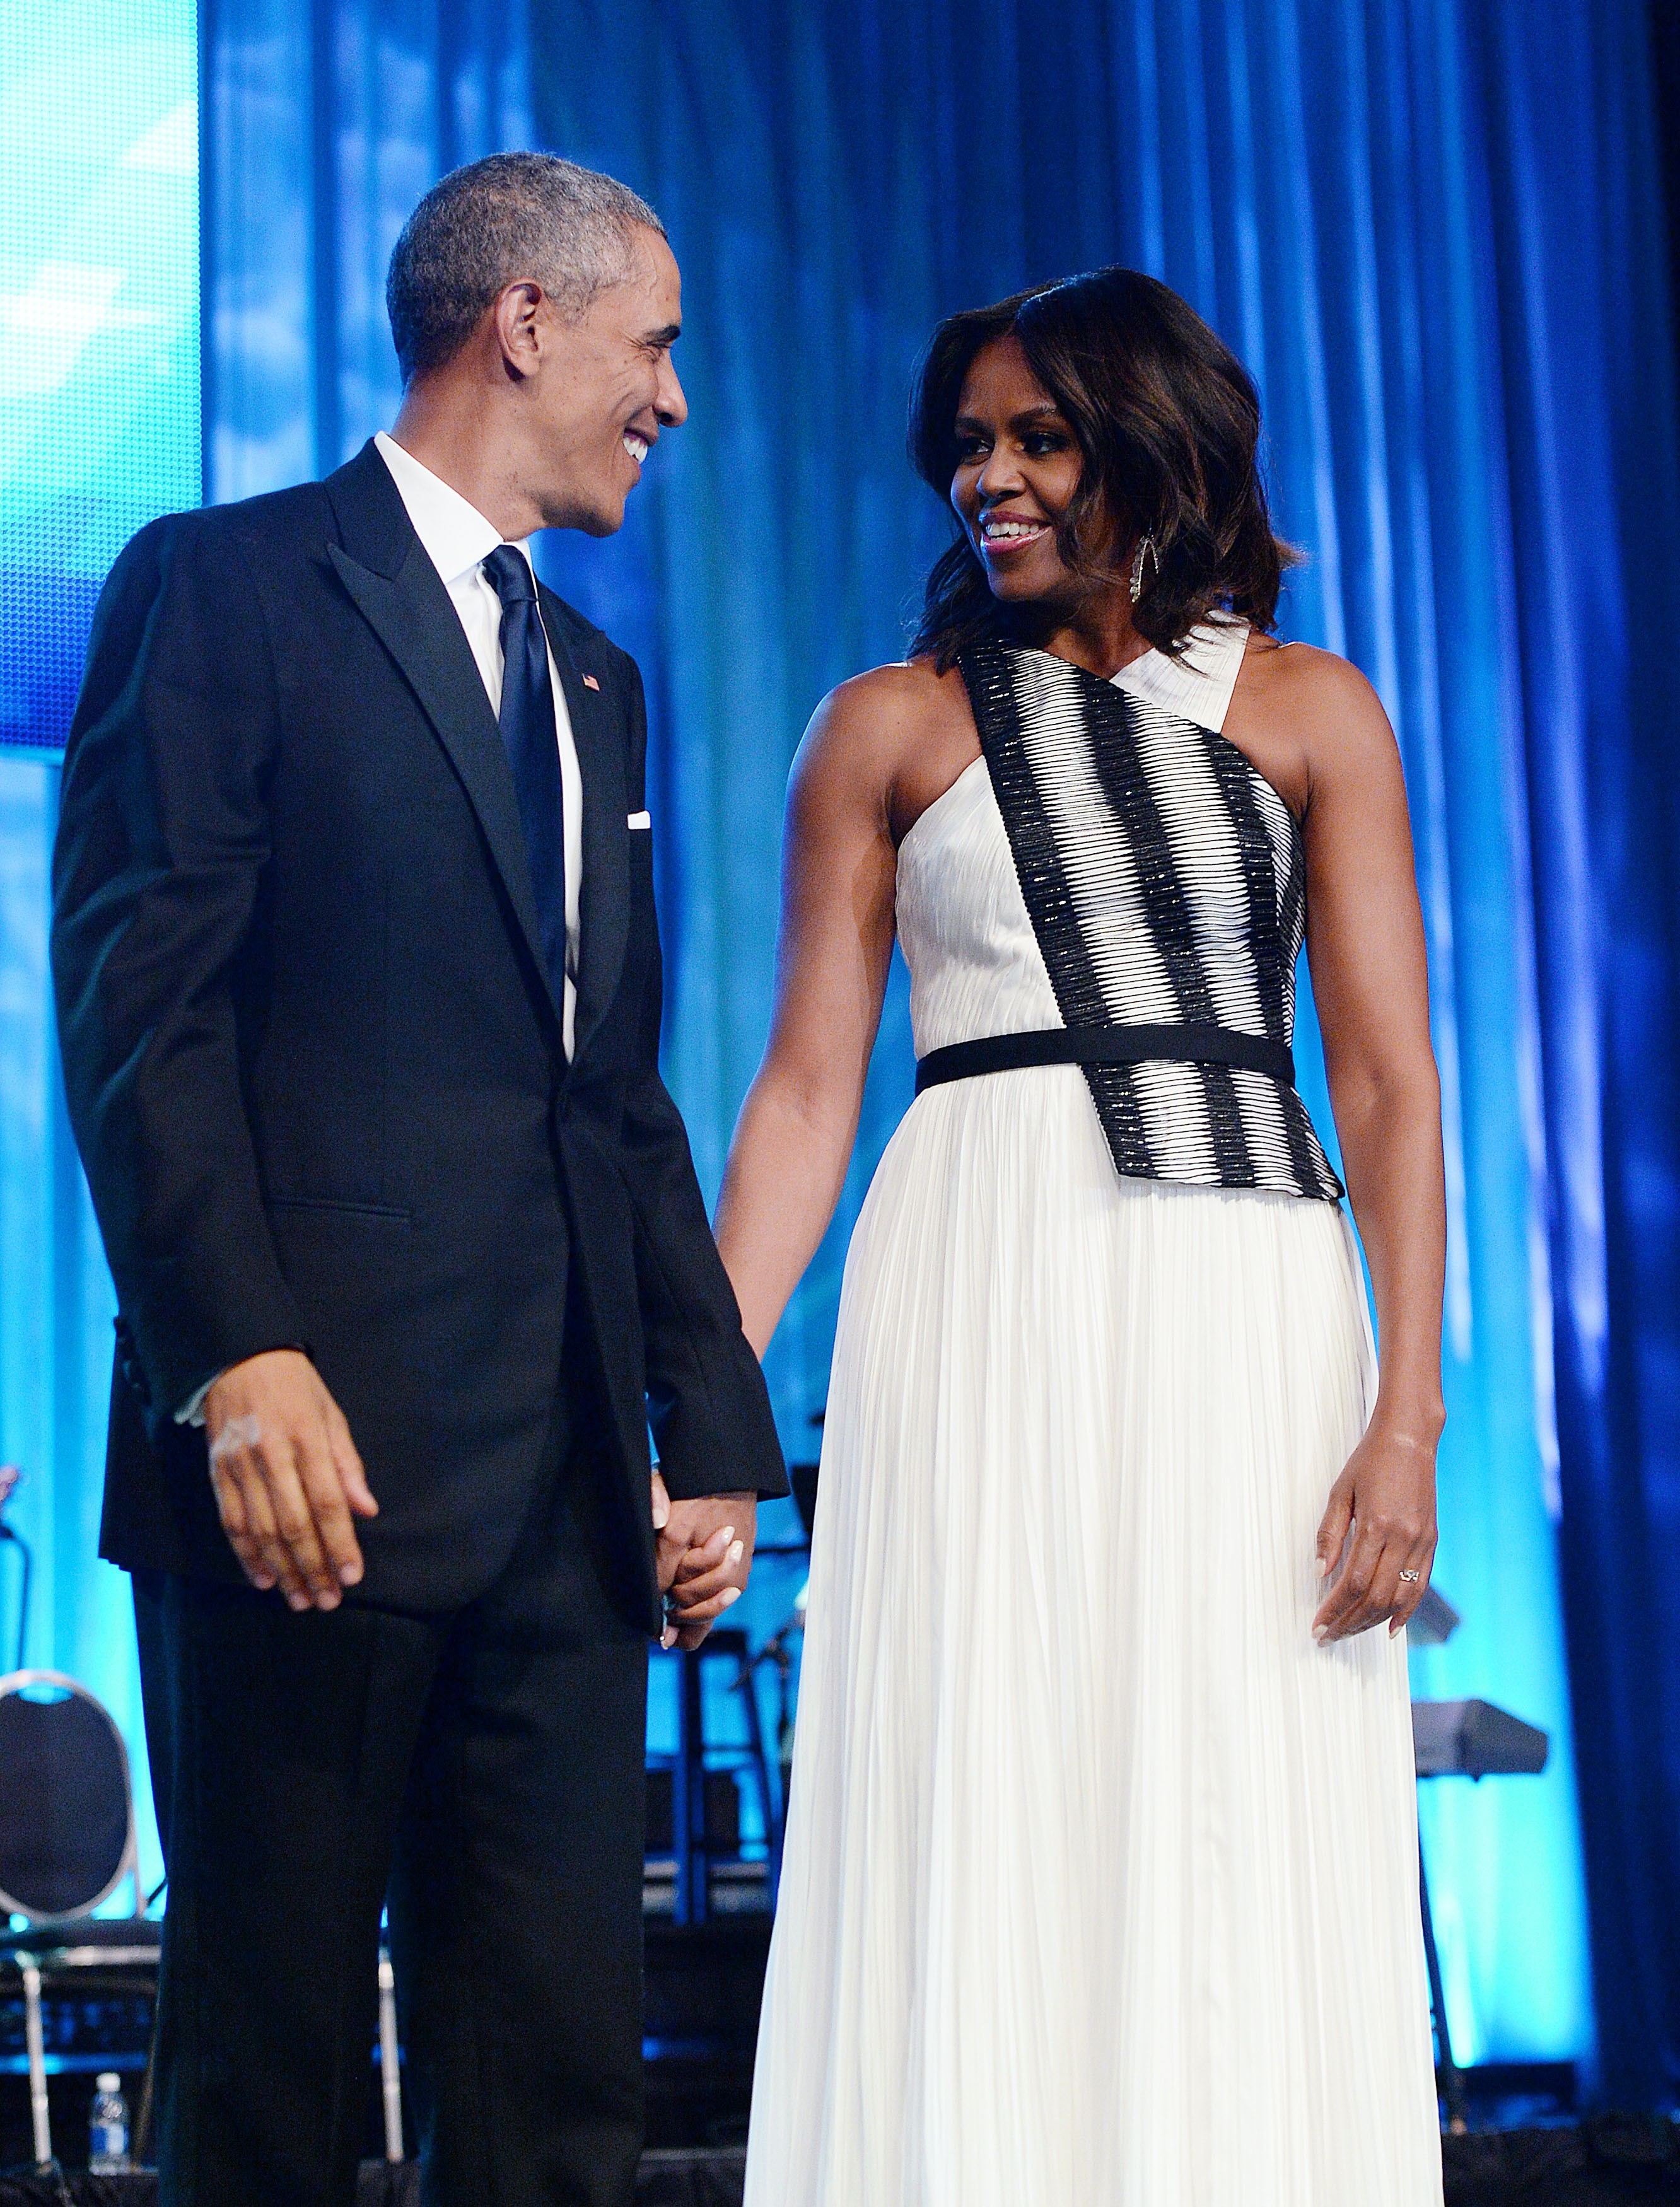 U.S. President Barack Obama and First Lady Michelle Obama arrive on stage for the Congressional Black Caucus Foundation Annual Phoenix Awards dinner, September 27, 2014 in Washington, DC.